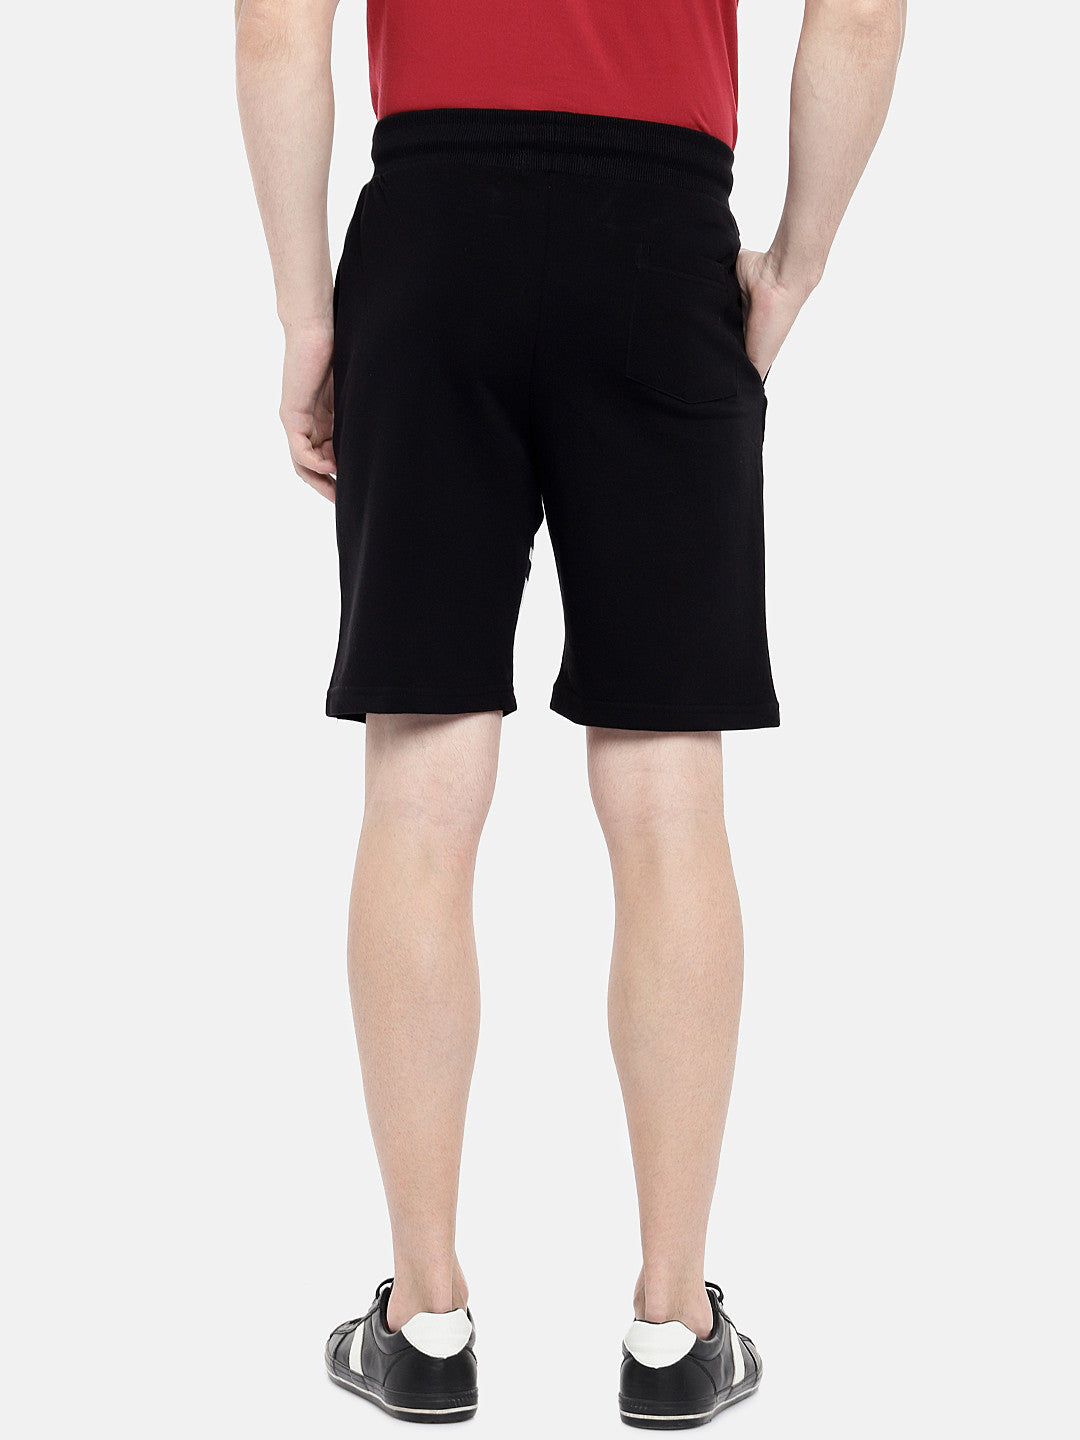 Black Solid Regular Fit Regular Shorts-3